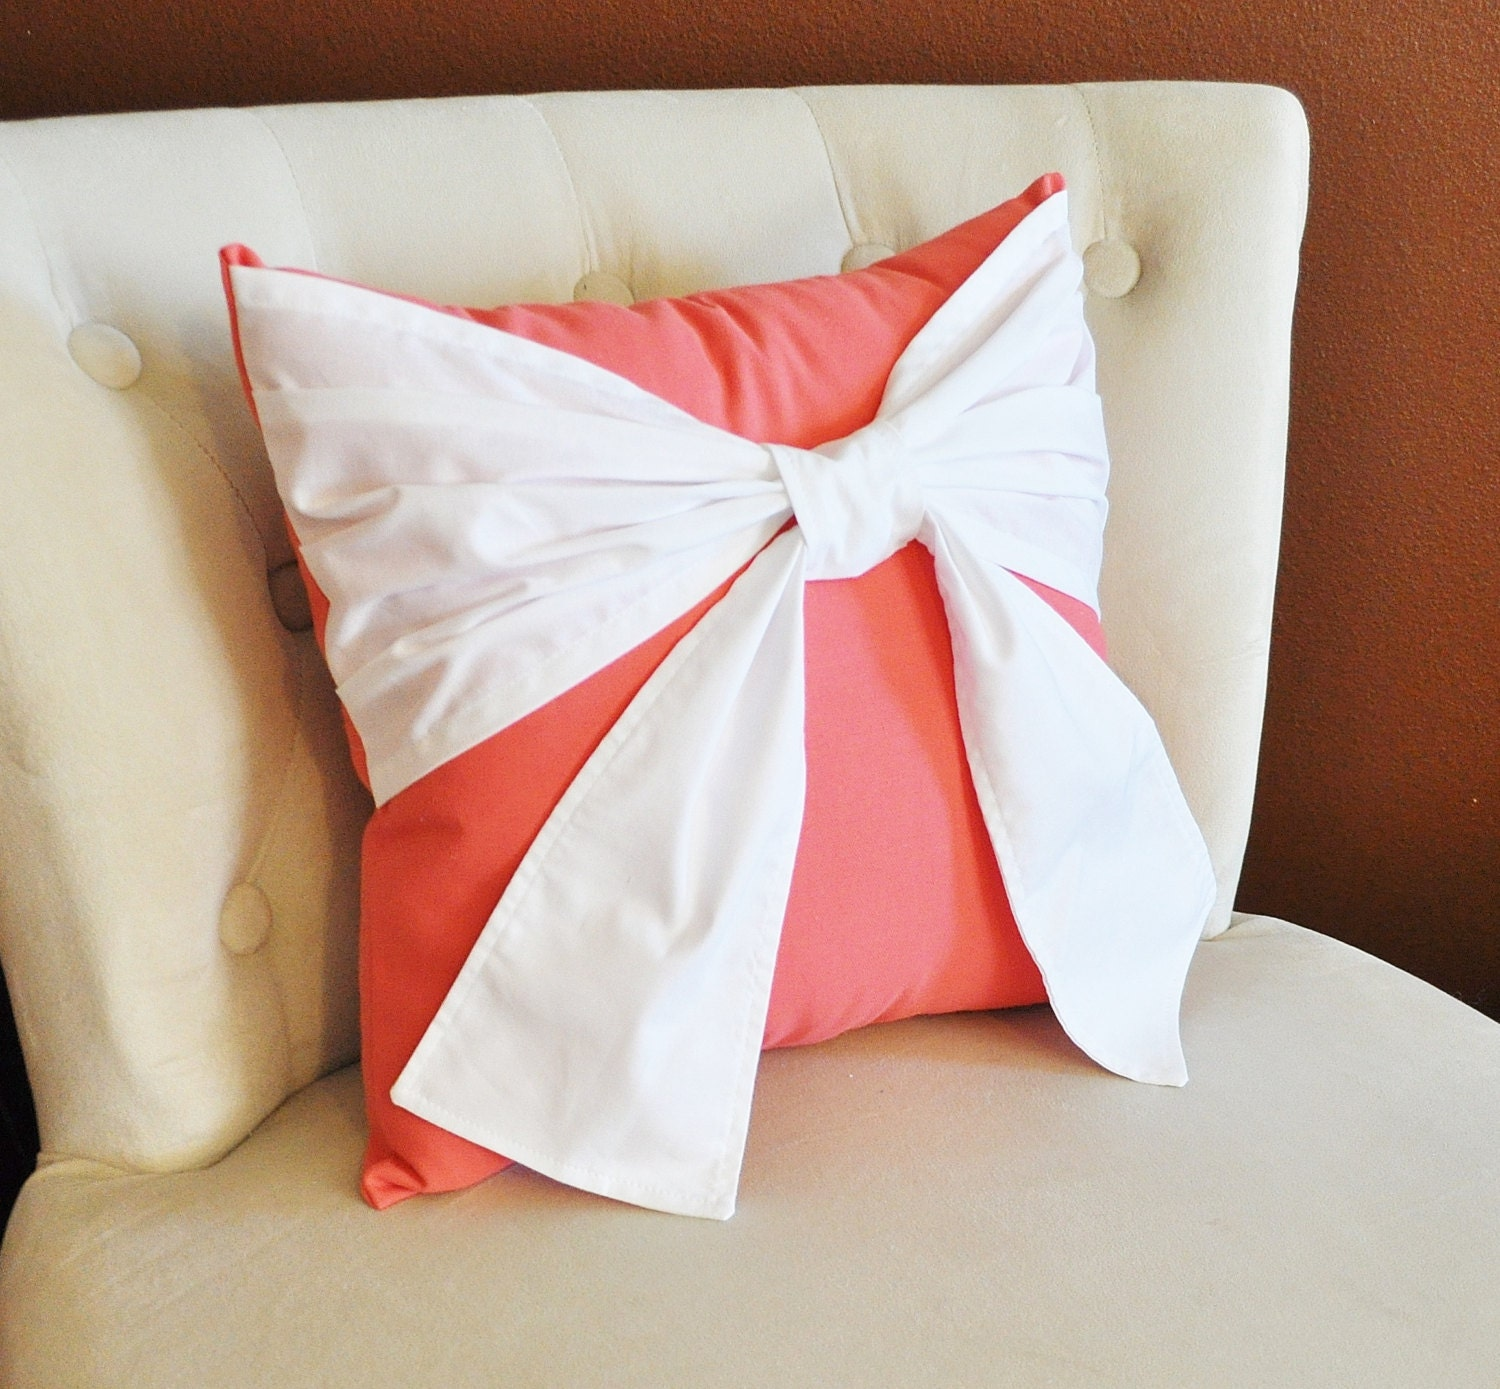 Throw Pillow With Bow : Throw Pillow White Bow on Coral Pillow 14x14 Coral Home